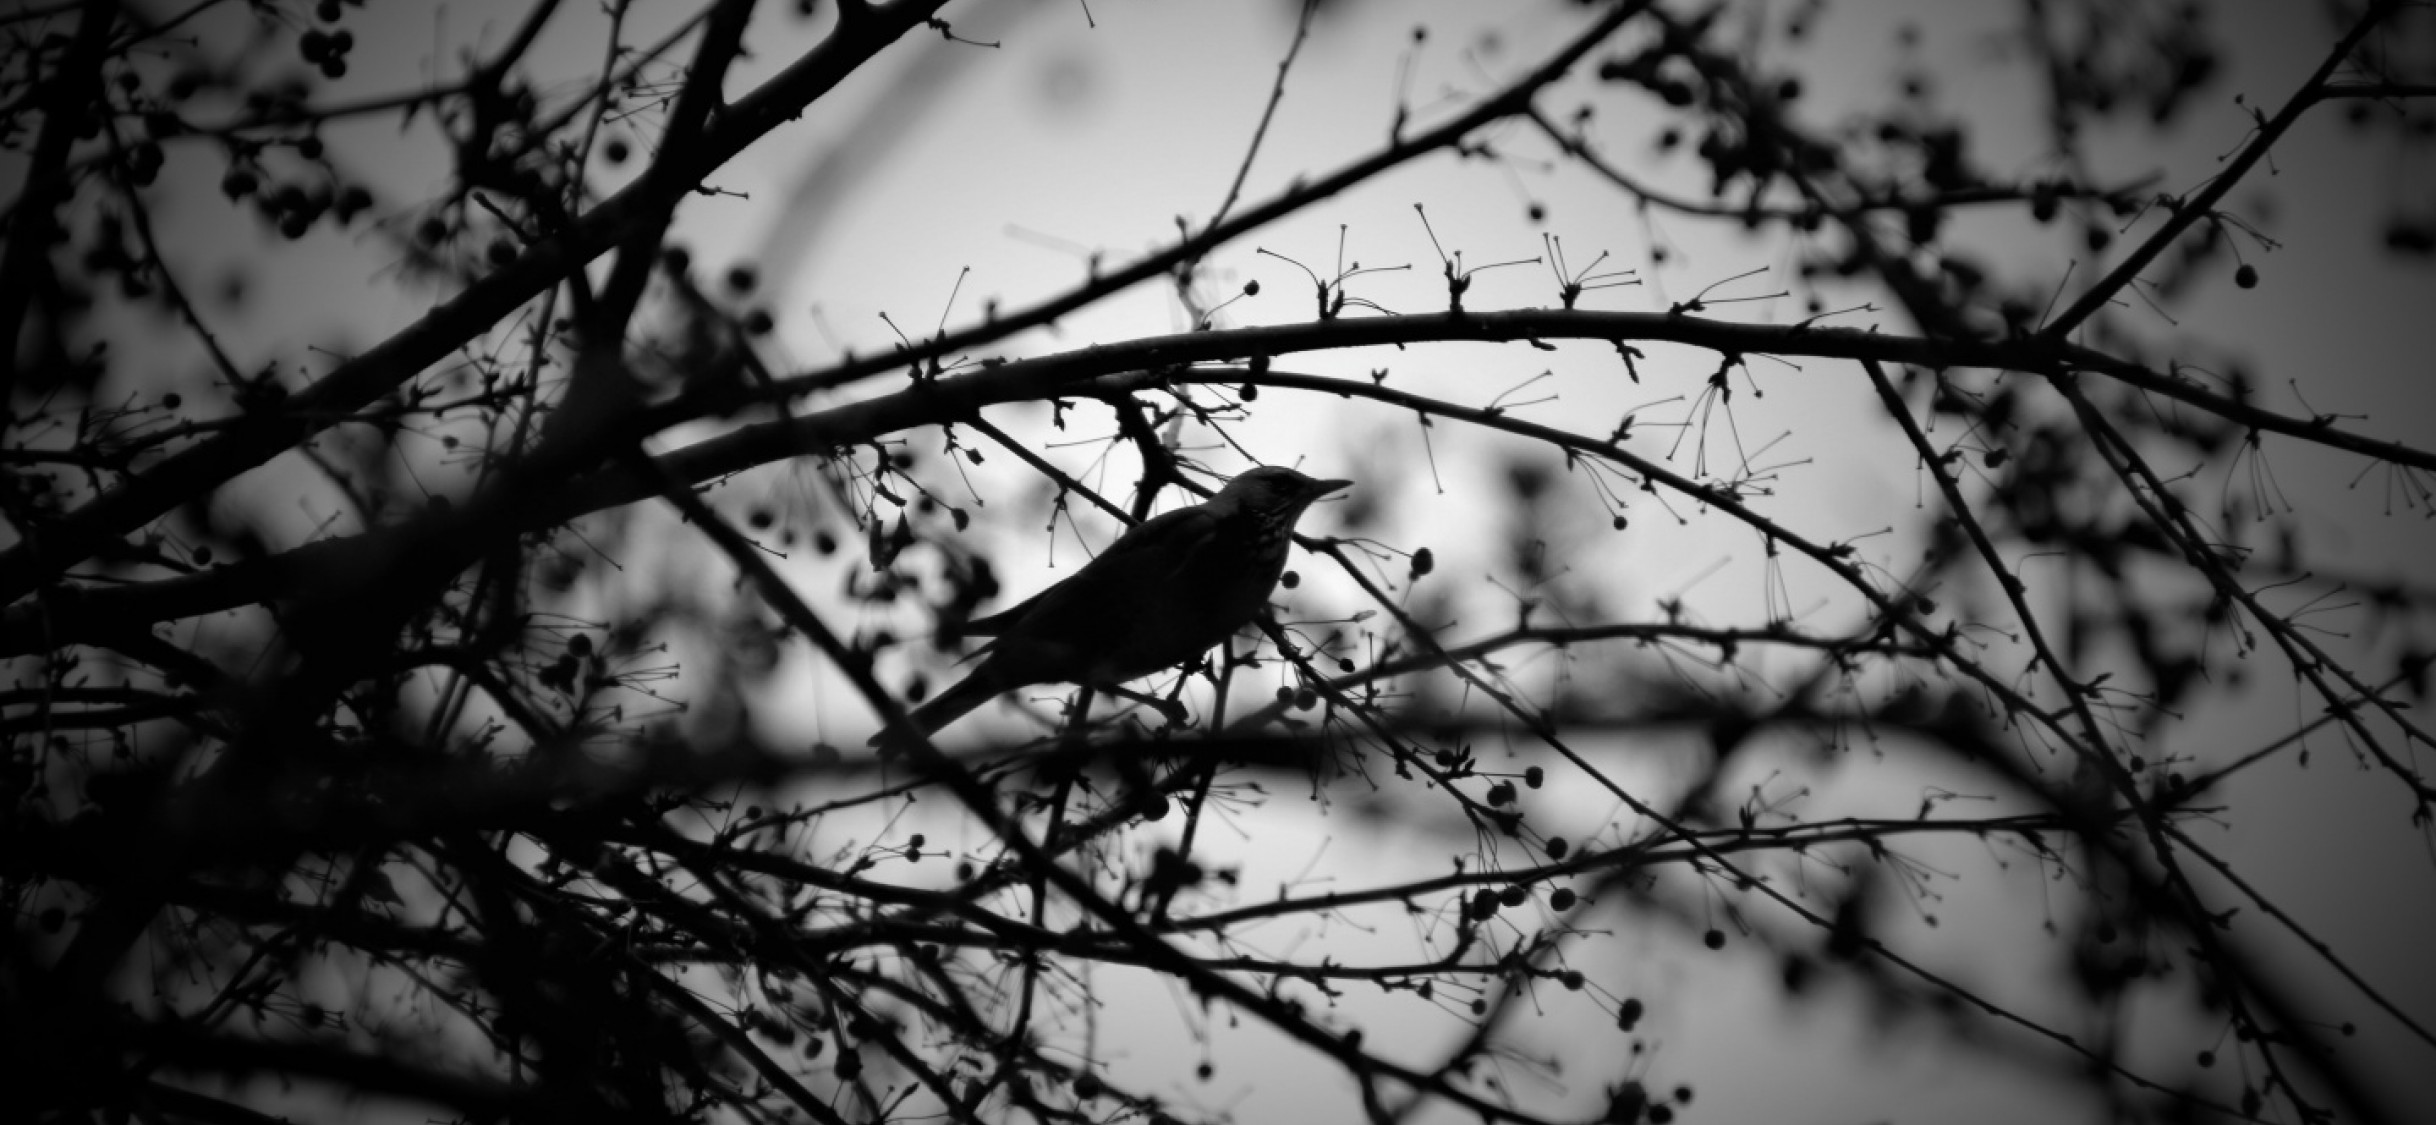 Black And White Bird And Tress Wallpaper For Desktop And